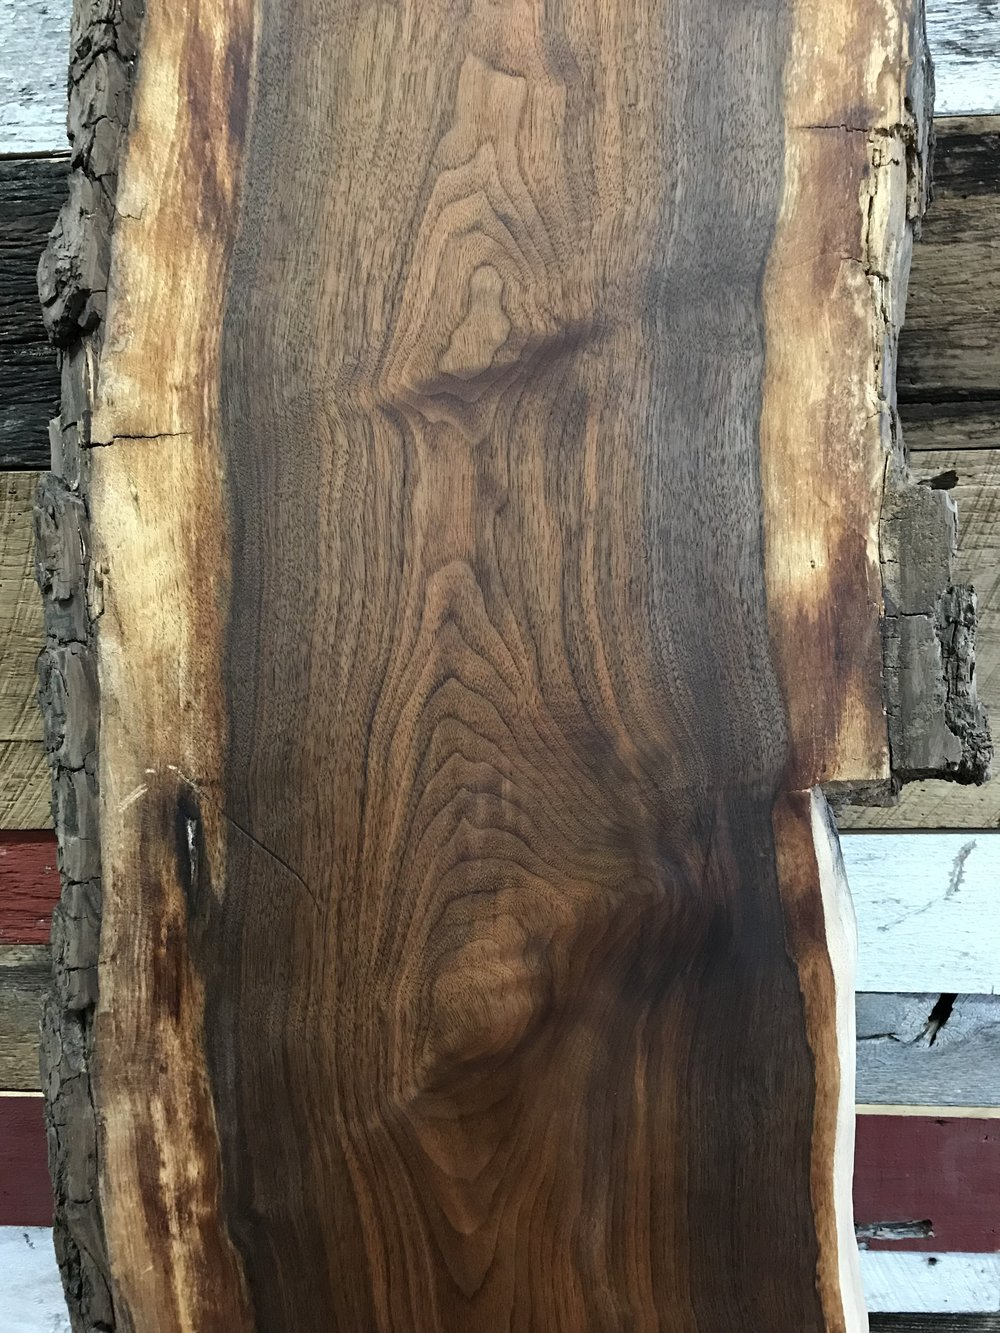 58 inch Black Walnut slab with deep rich color and grain